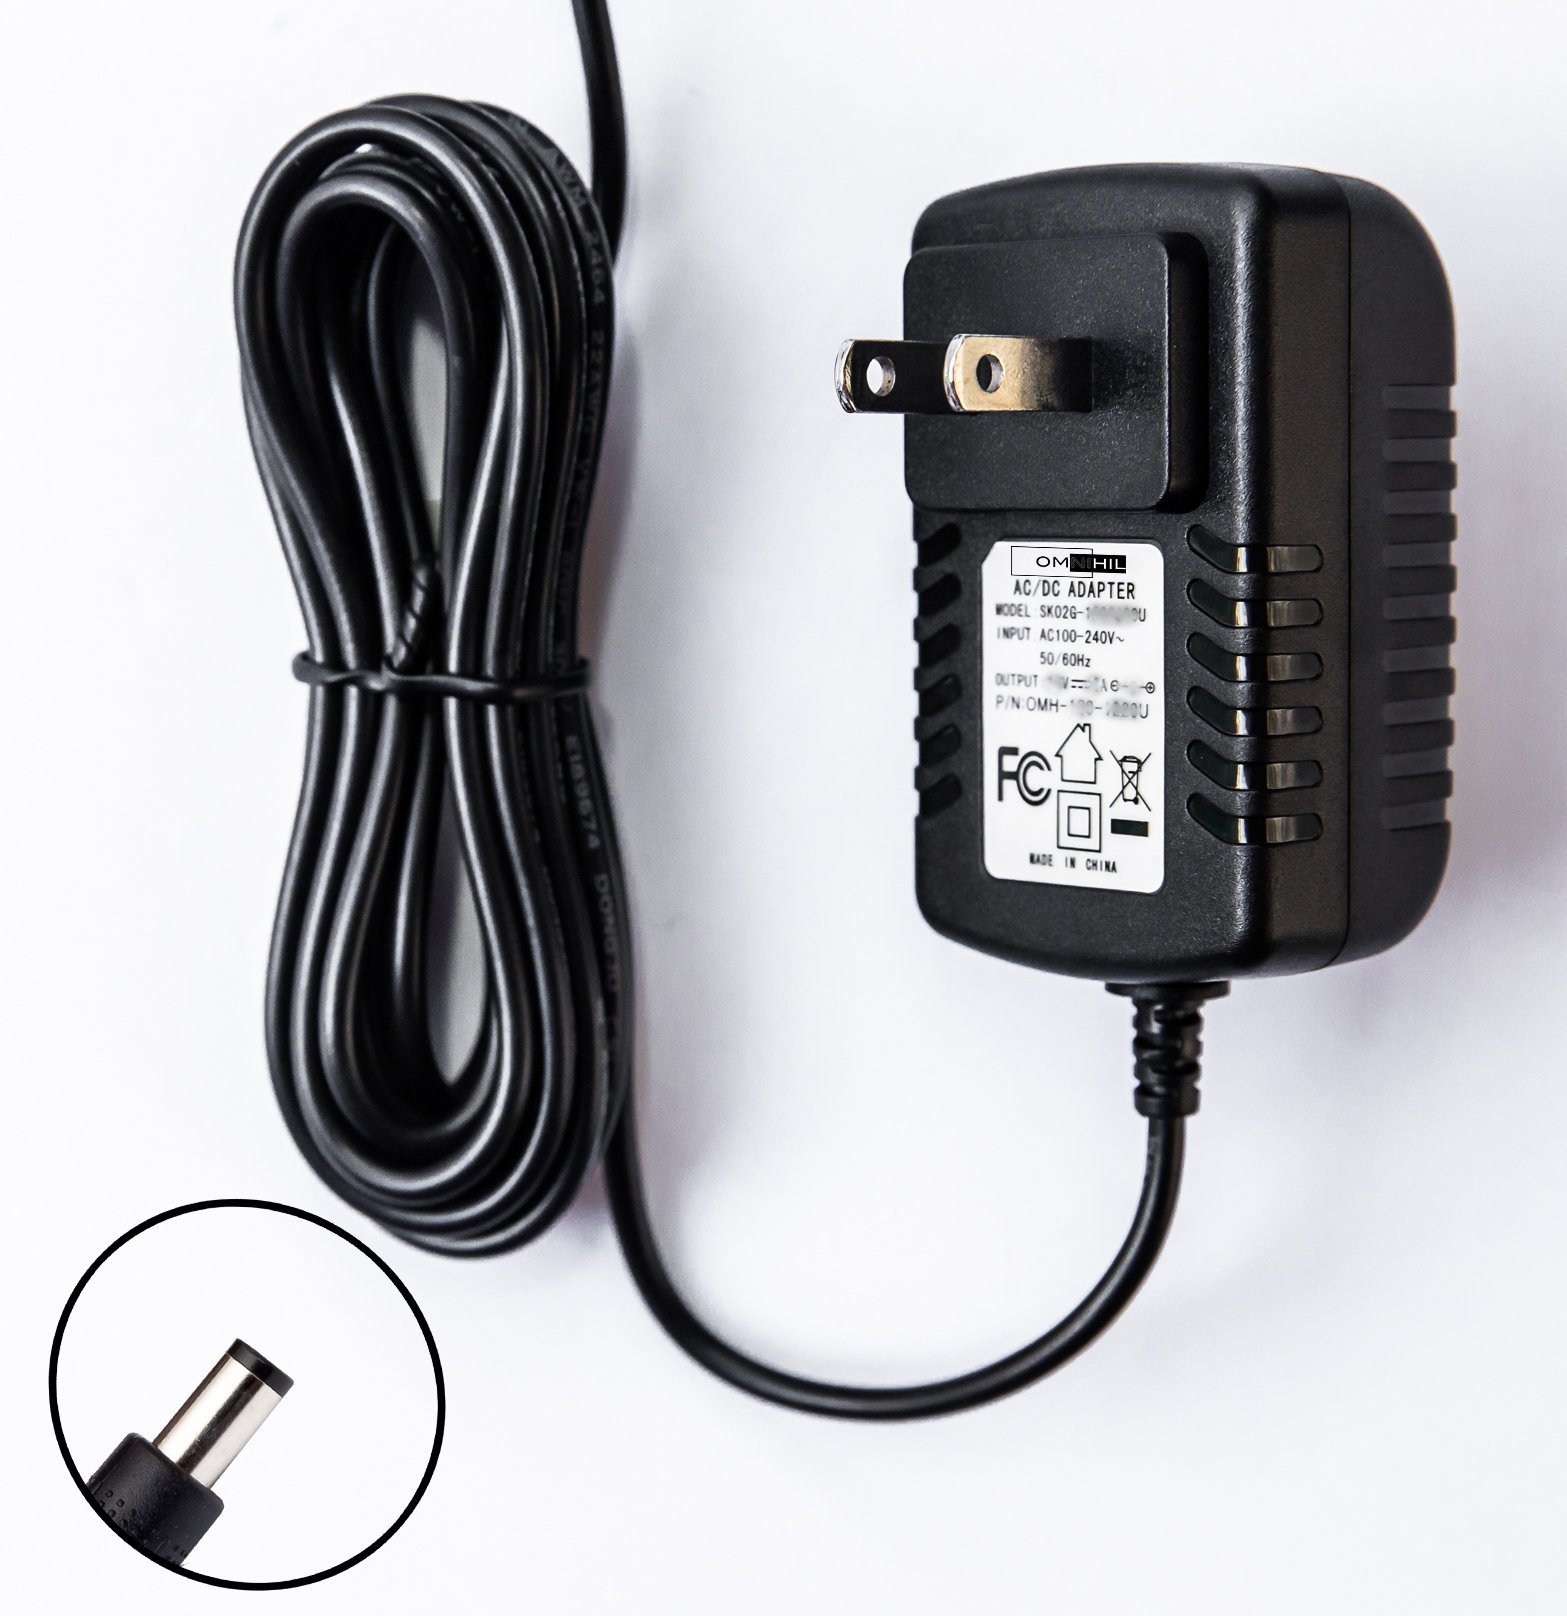 OMNIHIL Replacement AC Adapter Charger Switching Power Supply Cord Plug Wd Western Digital External Hard Drive HDD My Book Essential: WDH1U10000S Extra Long 8 Foot Cord by OMNIHIL (Image #3)